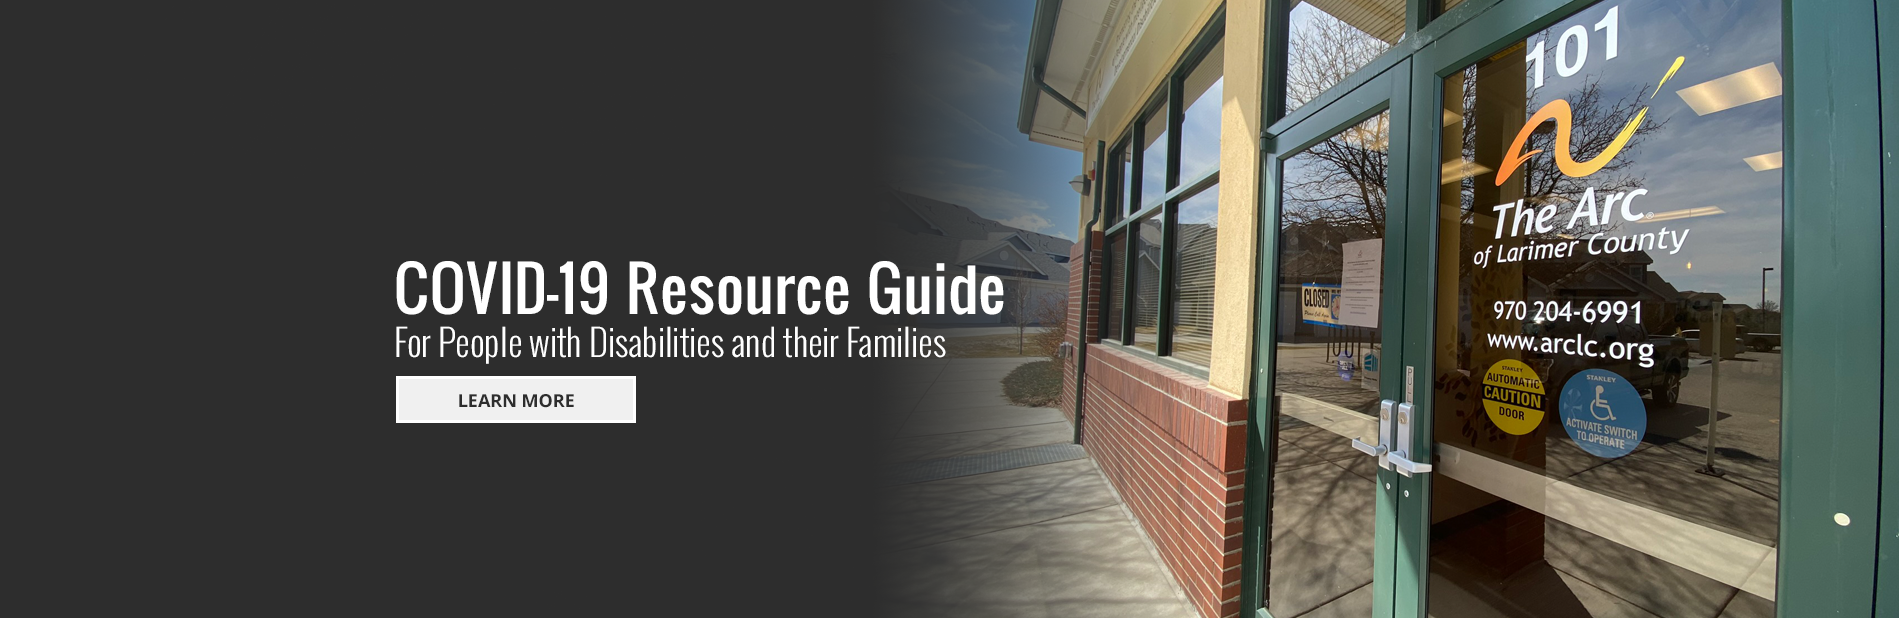 COVID-19 Resource Guide For People with Disabilities and their Families - Follow the Link to Learn More